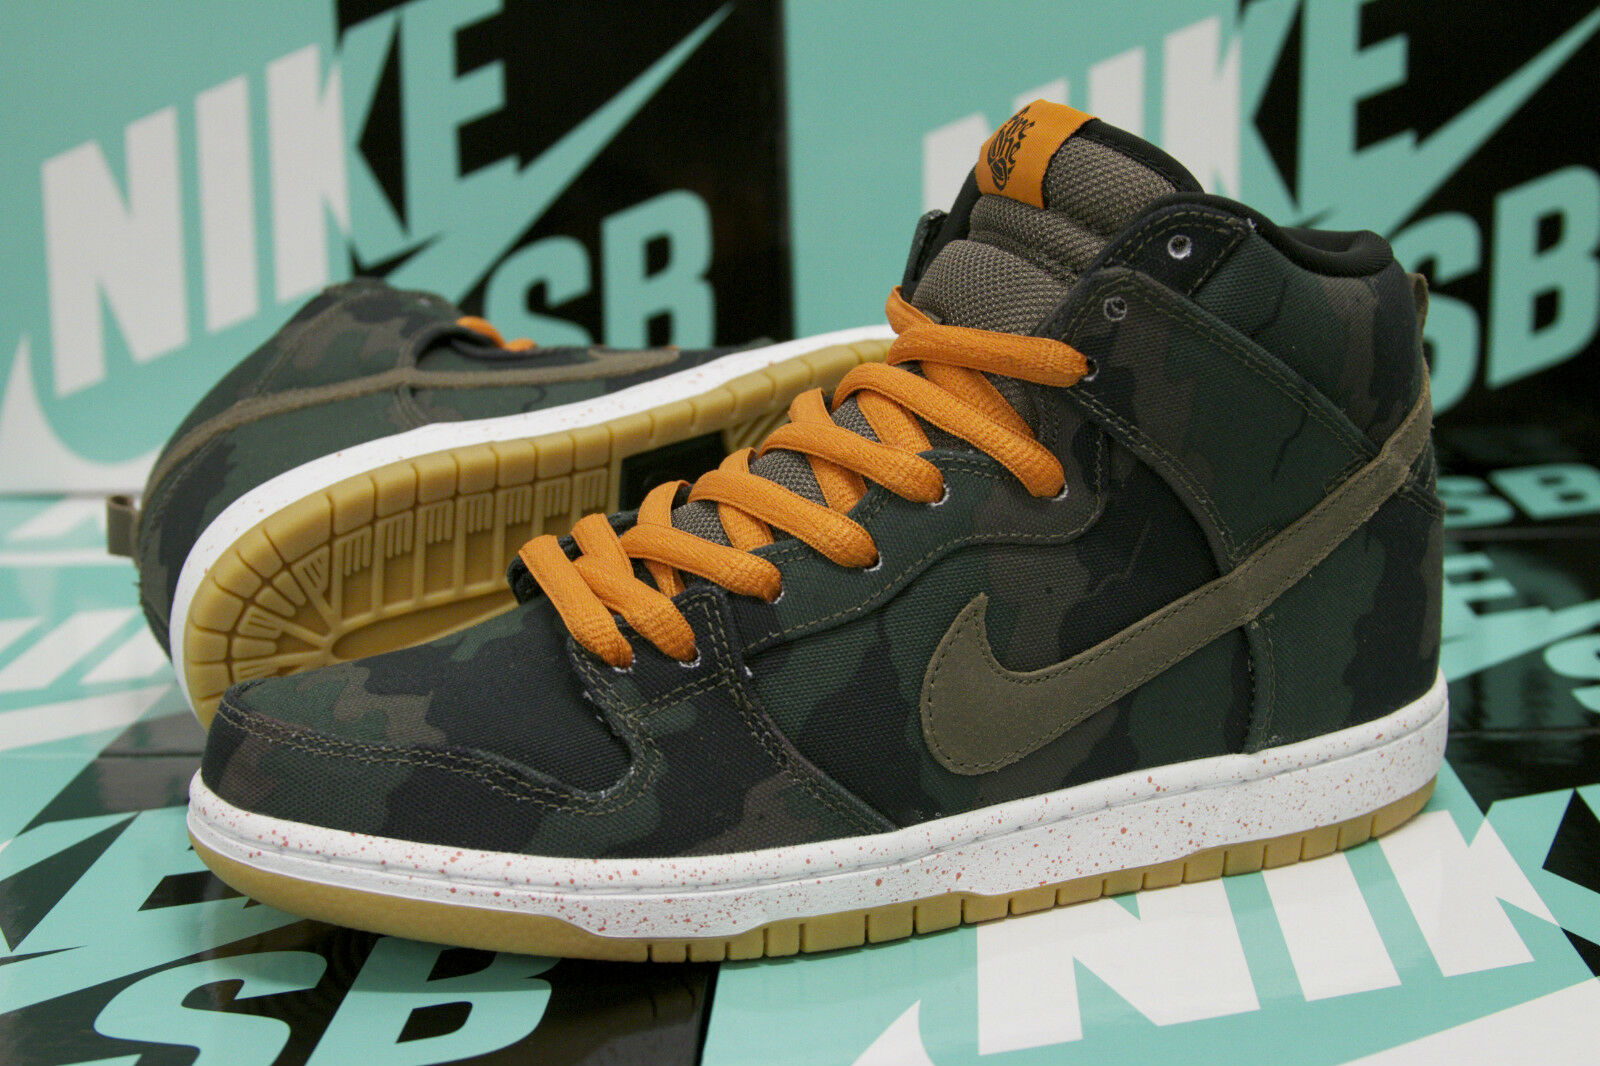 Nike SB Dunk High Premium FiveOneO - Camo / Olive Sunset - 646552 037 Benny Gold